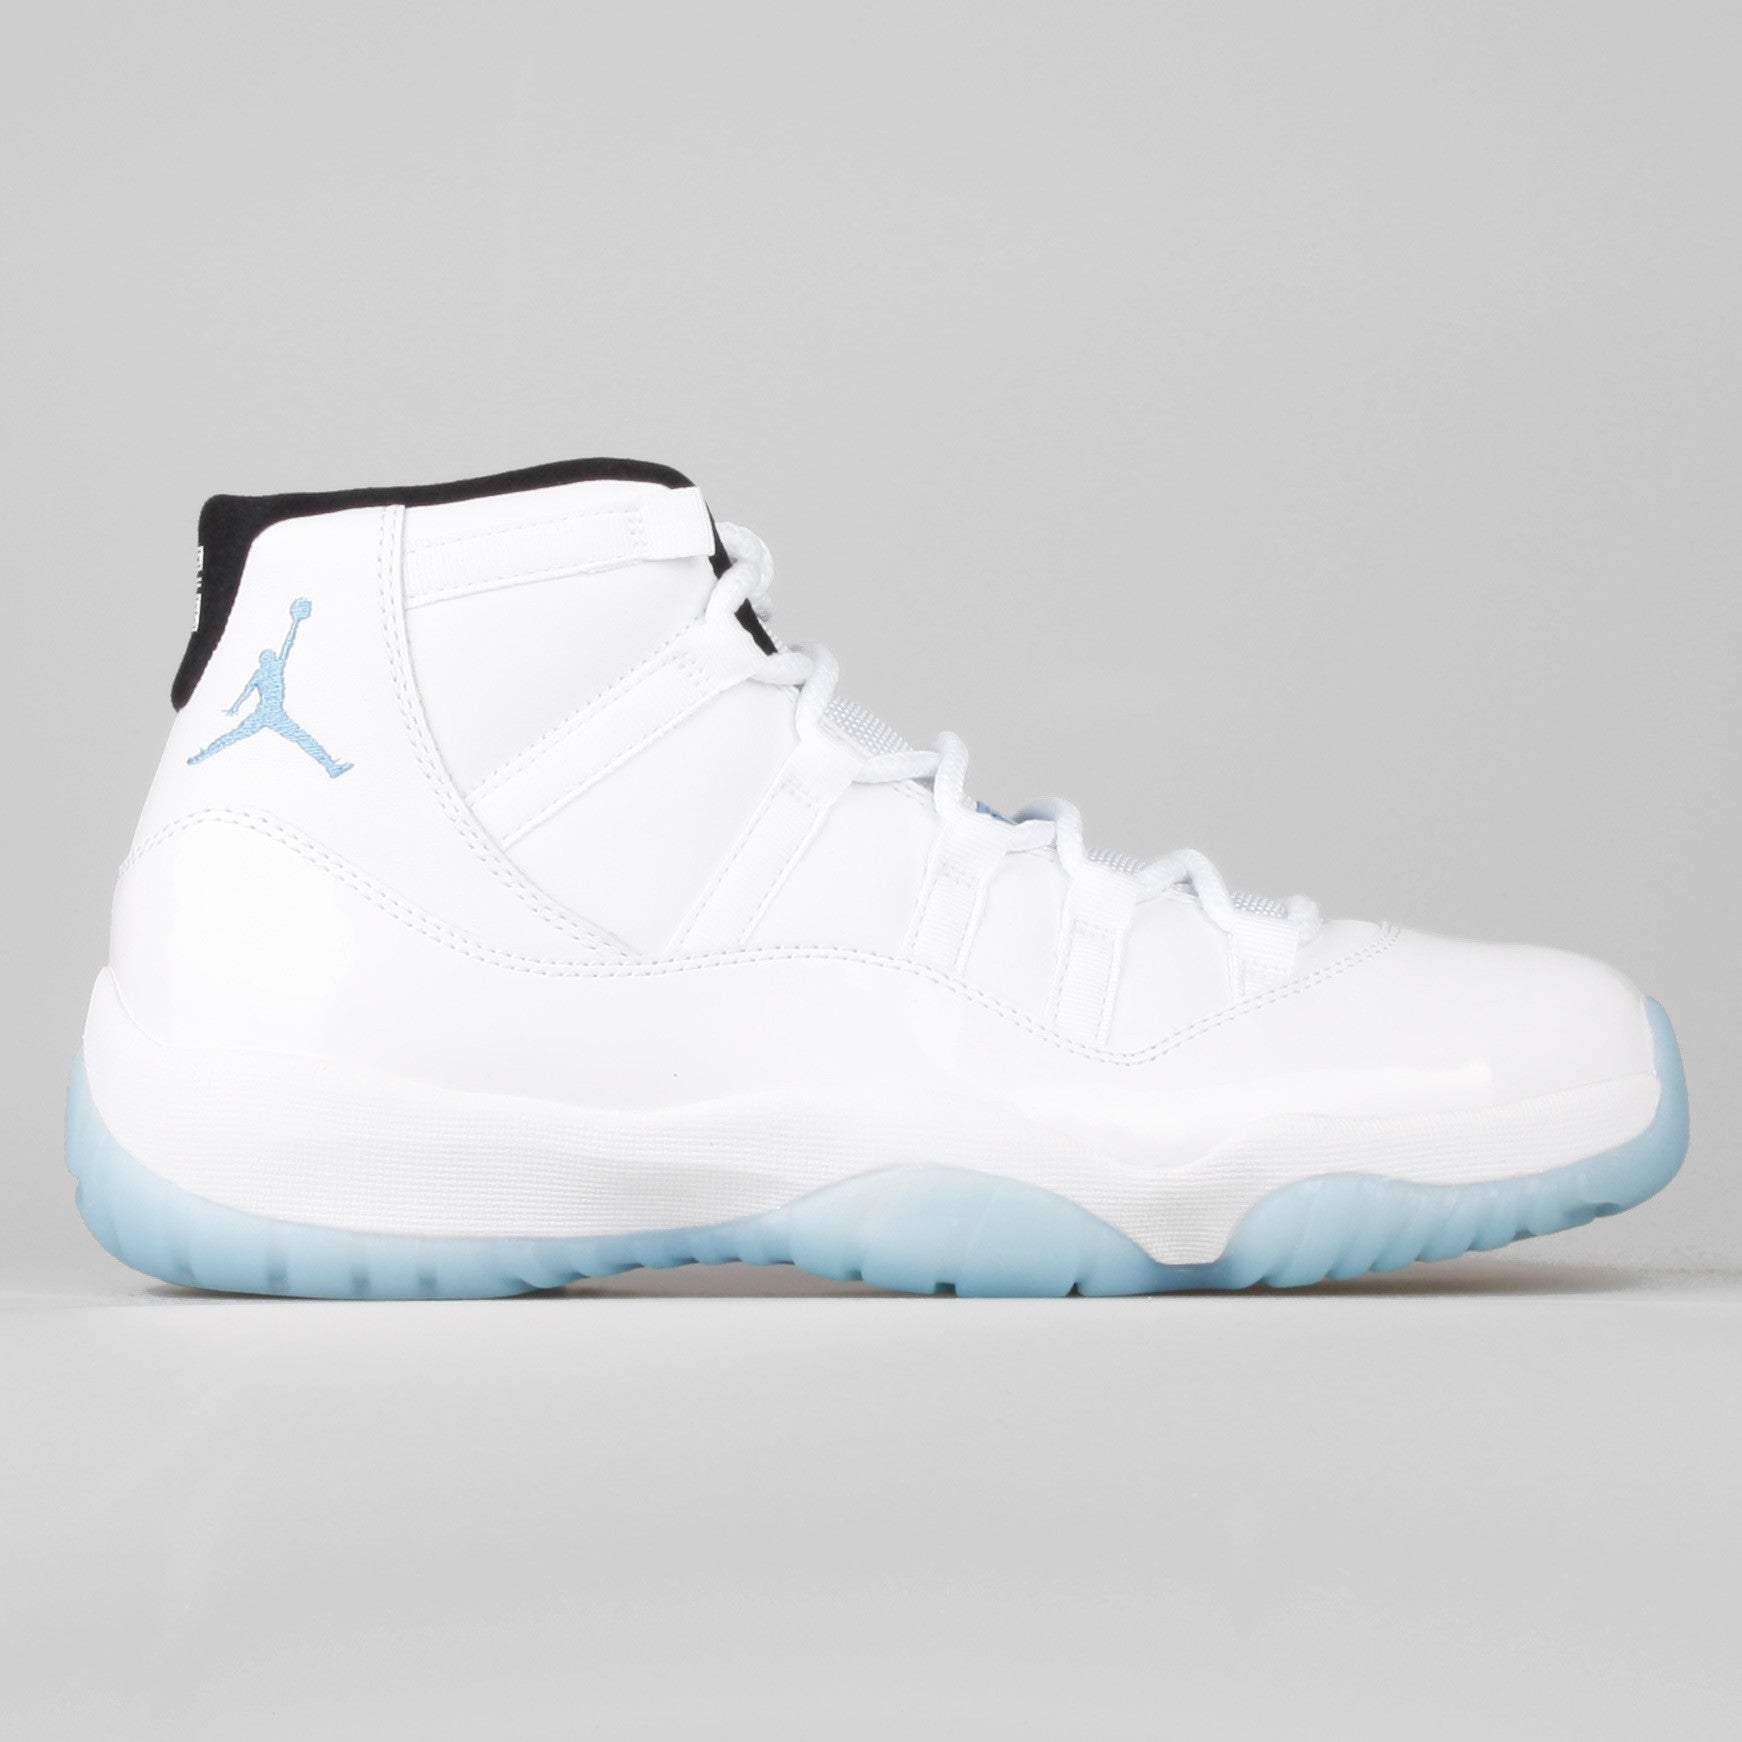 new product c1710 bee8c Nike Air Jordan 11 Retro Columbia Legend Blue (378037-117) ...